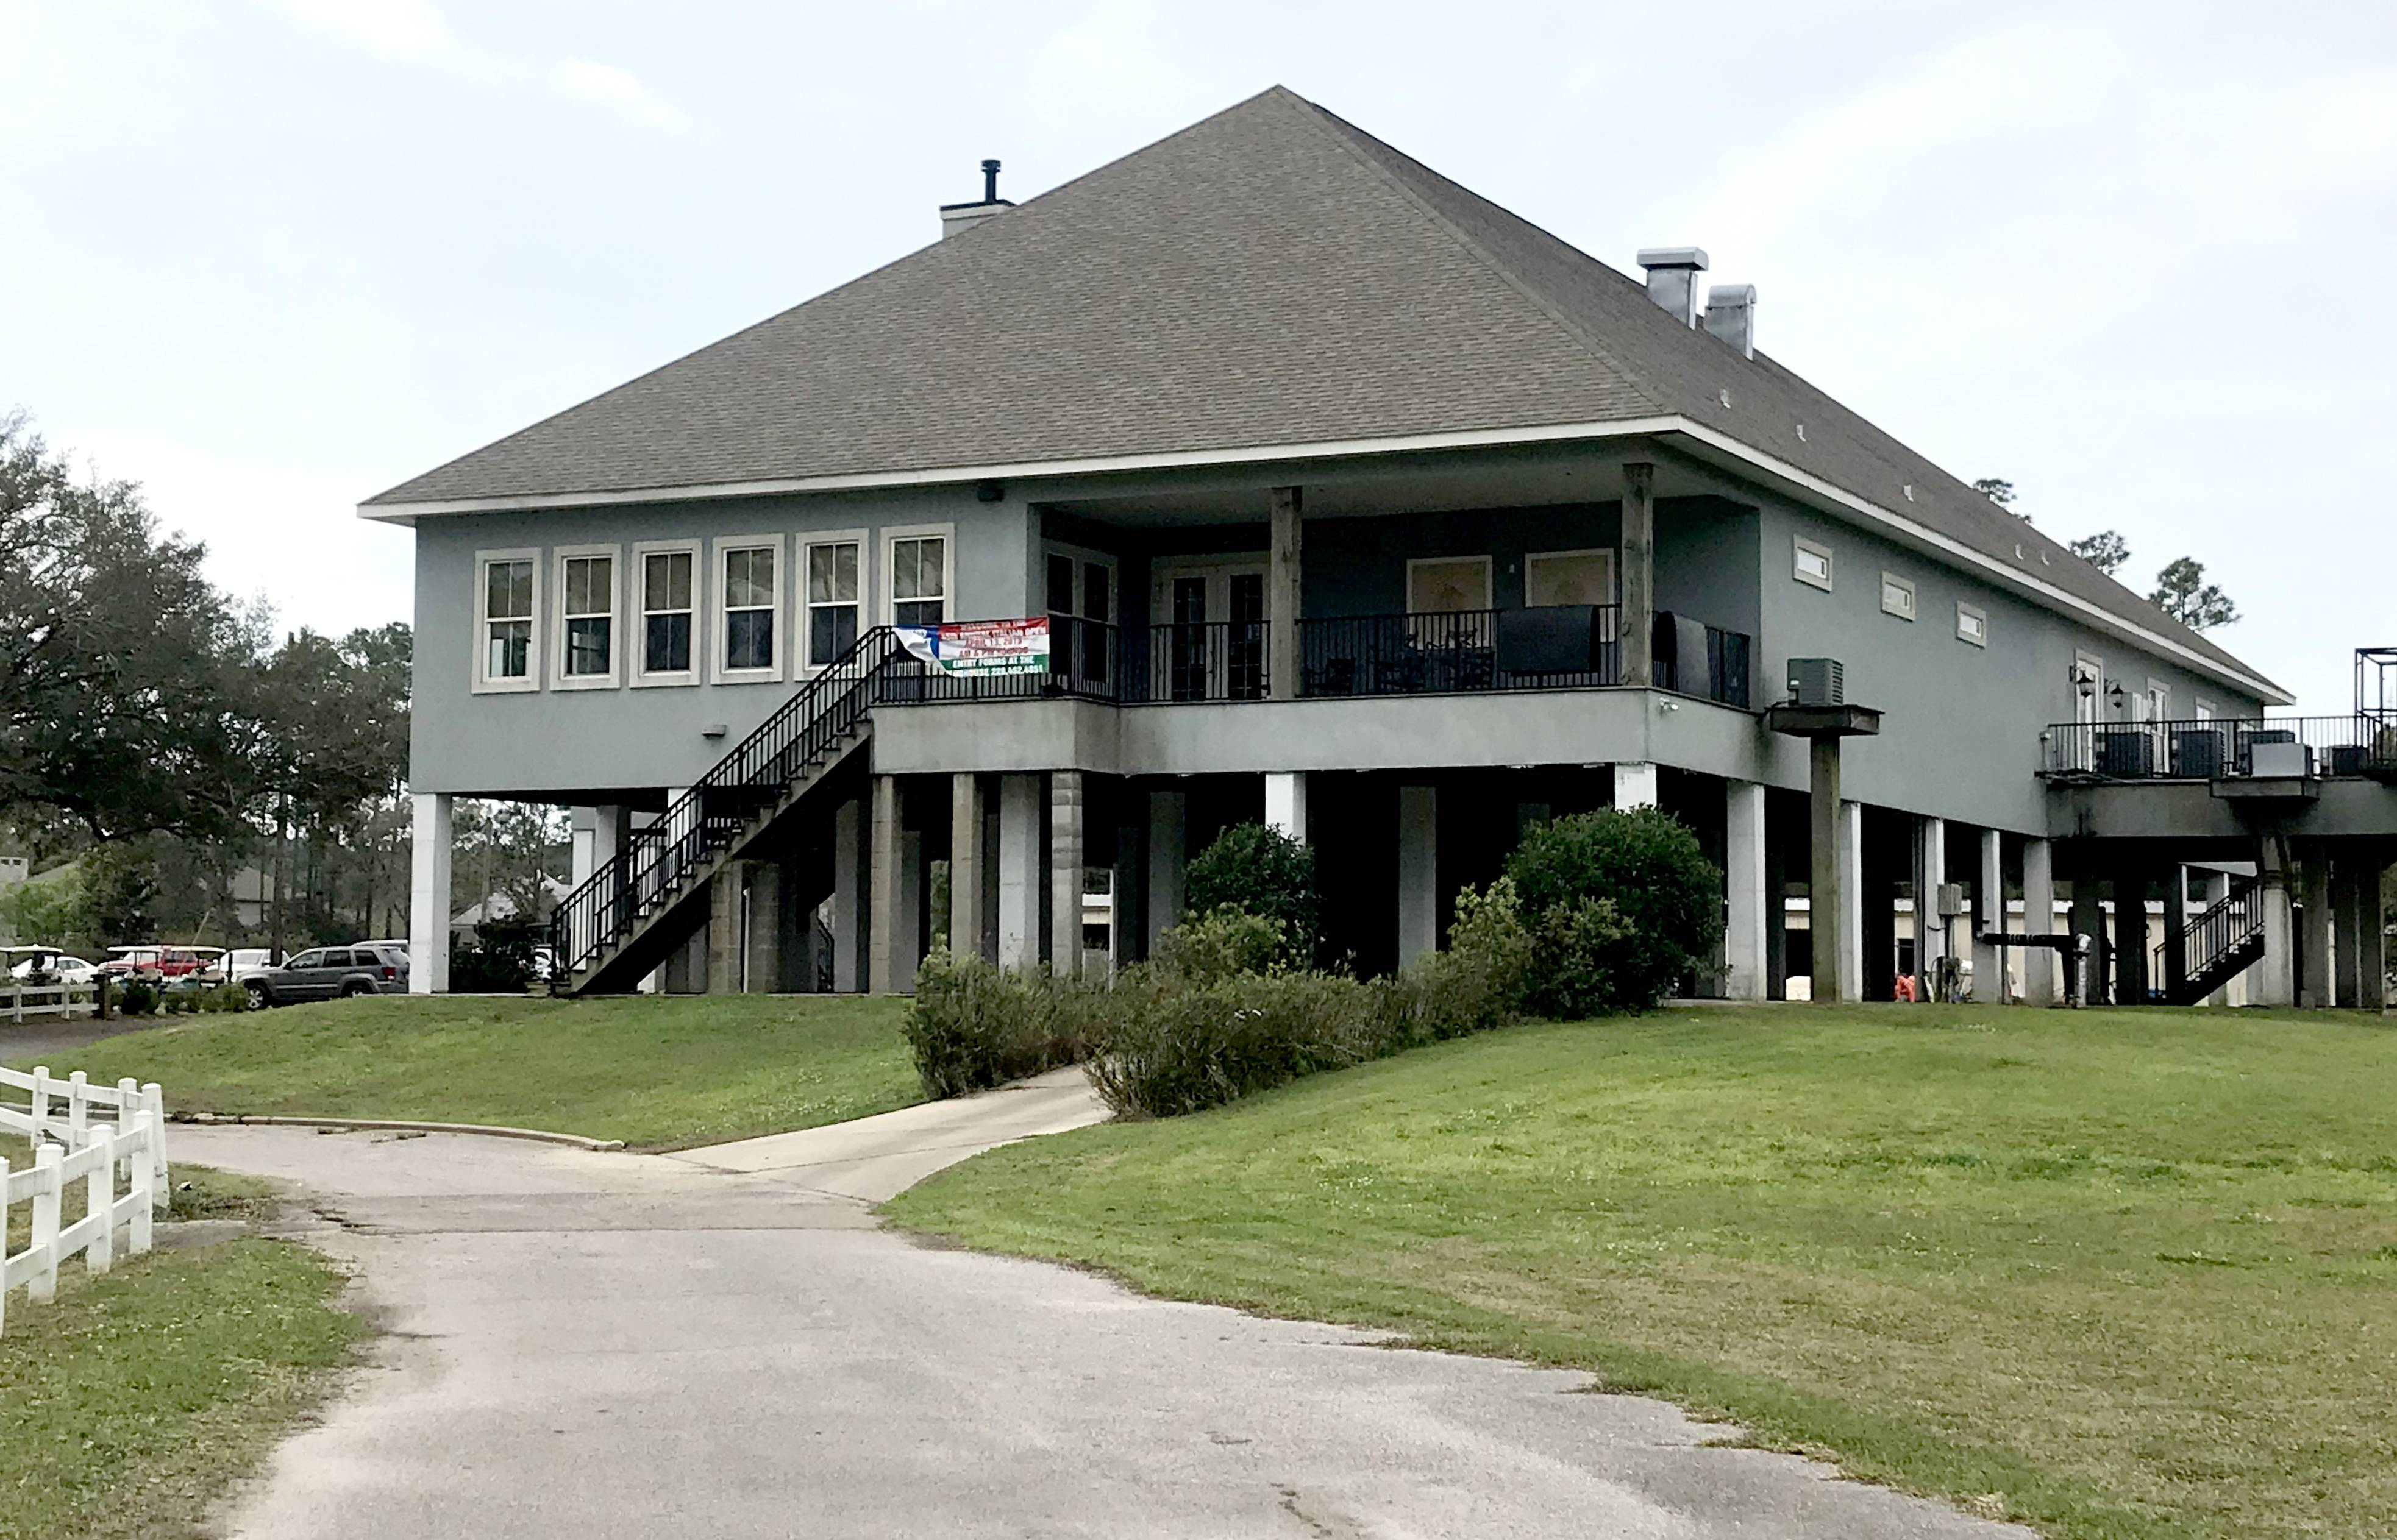 This area in Southern Mississippi was hit by a 27-foot storm surge during Hurricane Katrina, and Pass Christian Isles Golf Club rebuilt its clubhouse high off the ground.